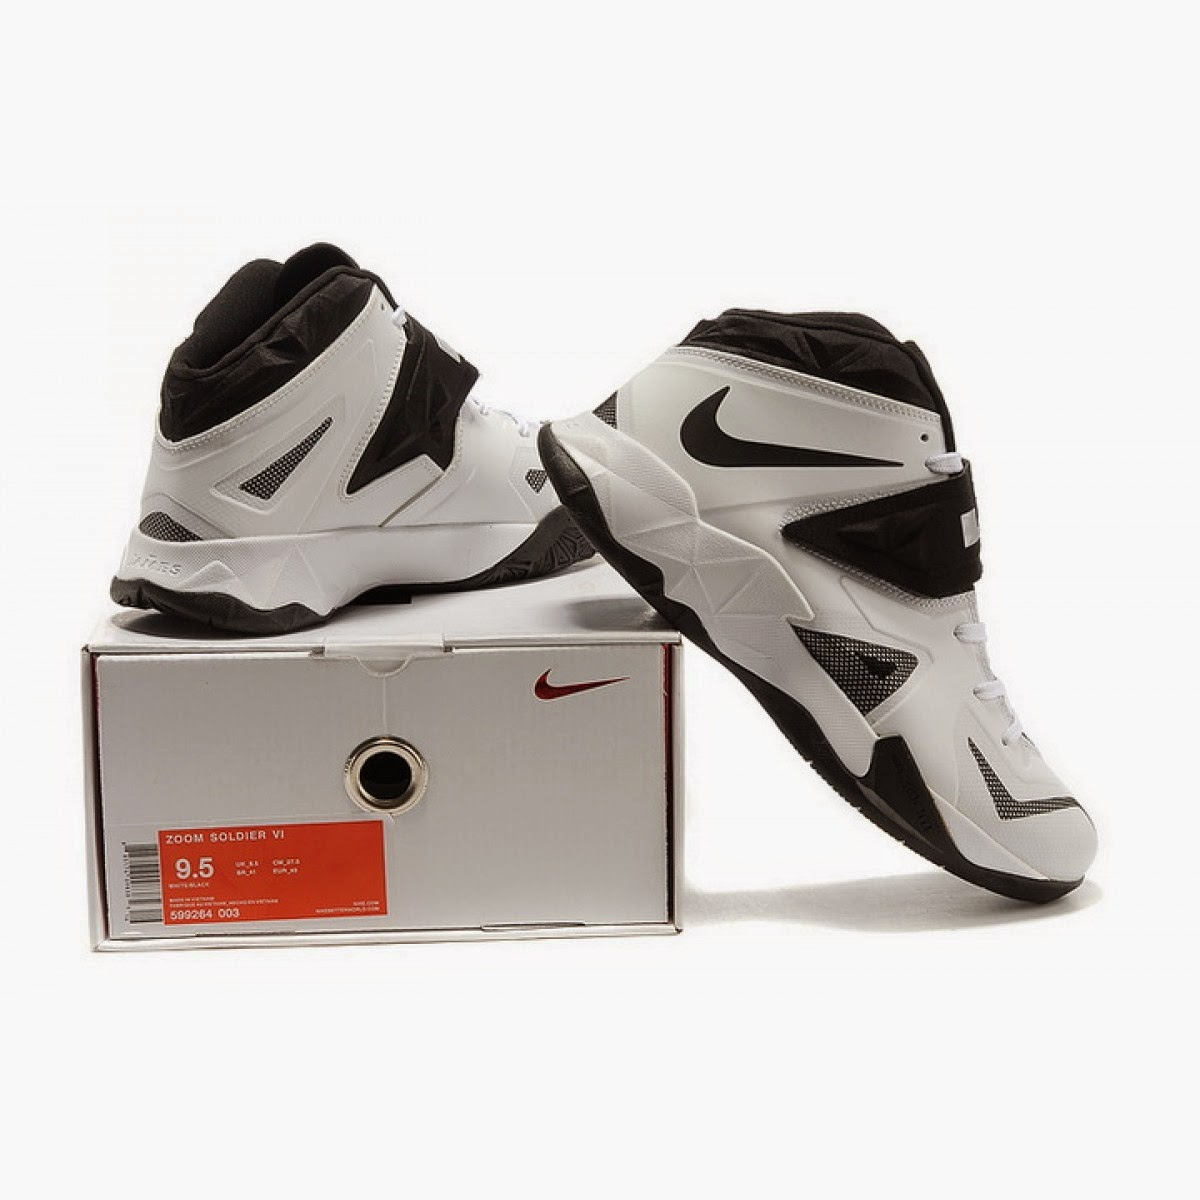 Nike Lebron 7 VII Soldier 2013 White Black Running Shoes For Sale